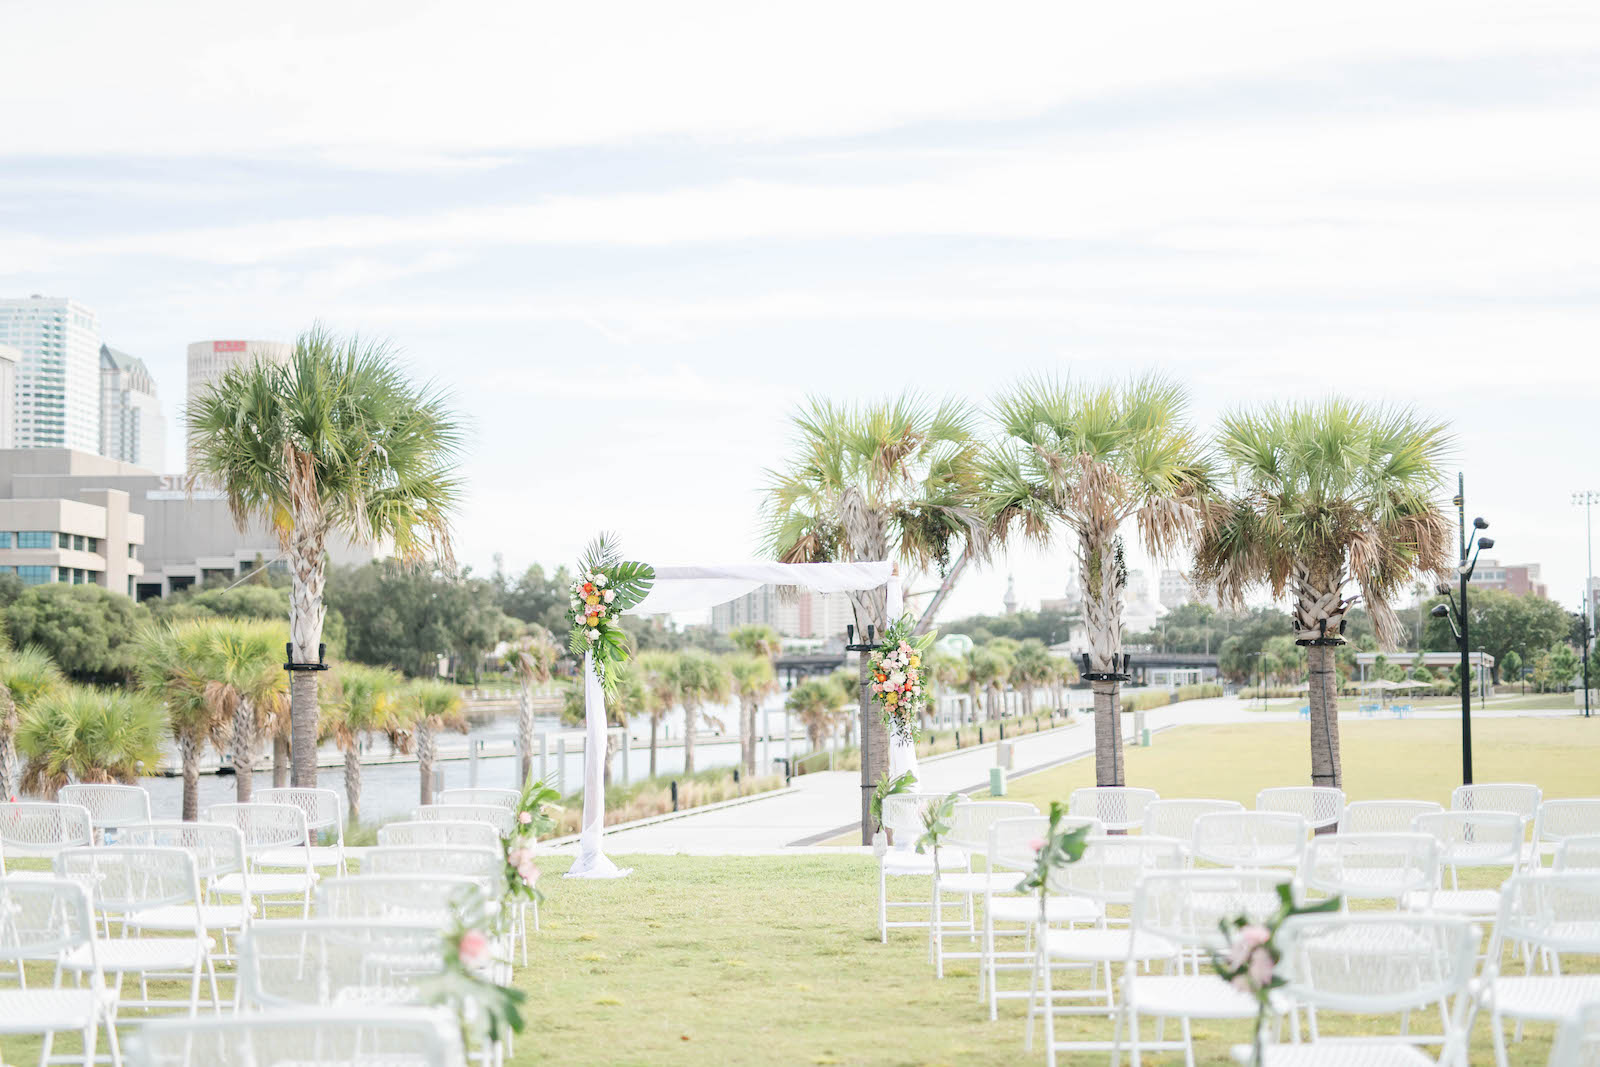 Tropical Outdoor Wedding Ceremony Decor, Arch with Monstera Palm Leaves Colorful Flower Arrangements | Tampa Bay Wedding Planner Coastal Coordinating